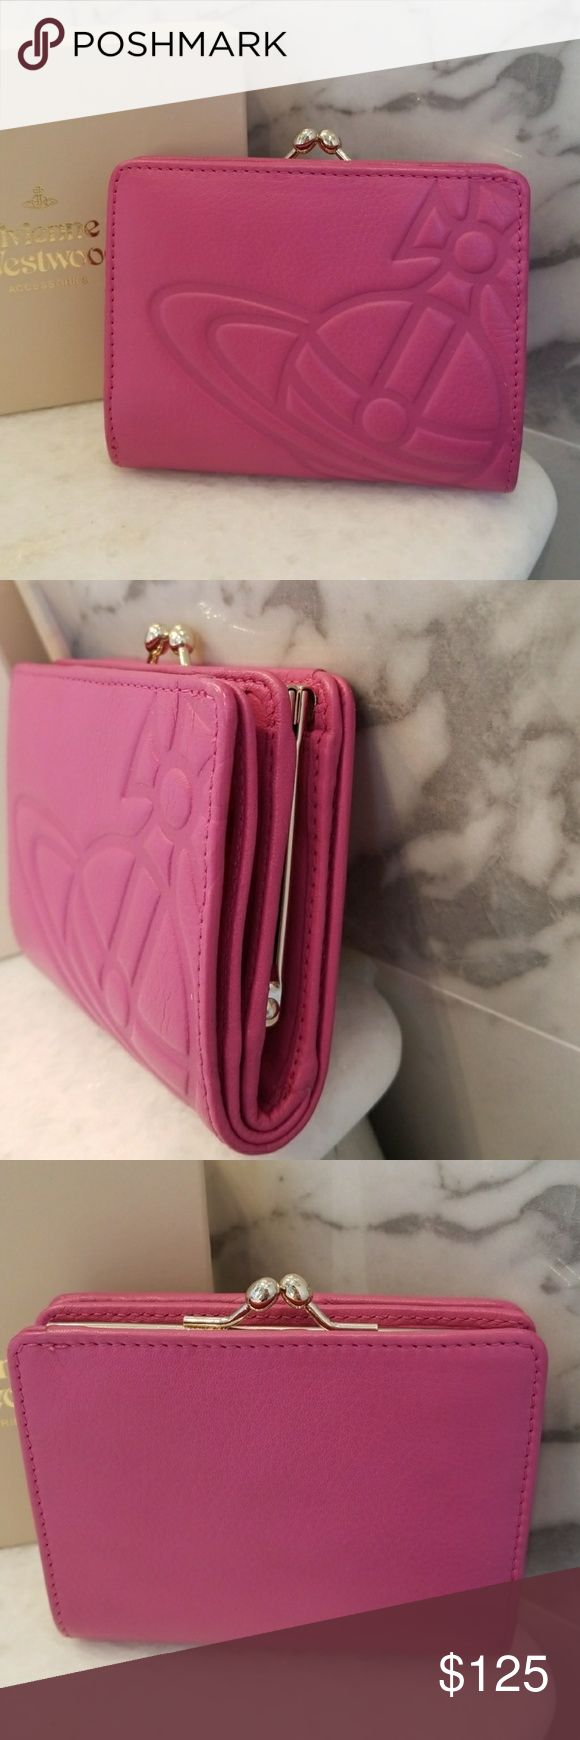 Vivienne Westwood Lampskin Wallet Pre-own and in excellent condition. Vivienne Westwood Bags Wallets